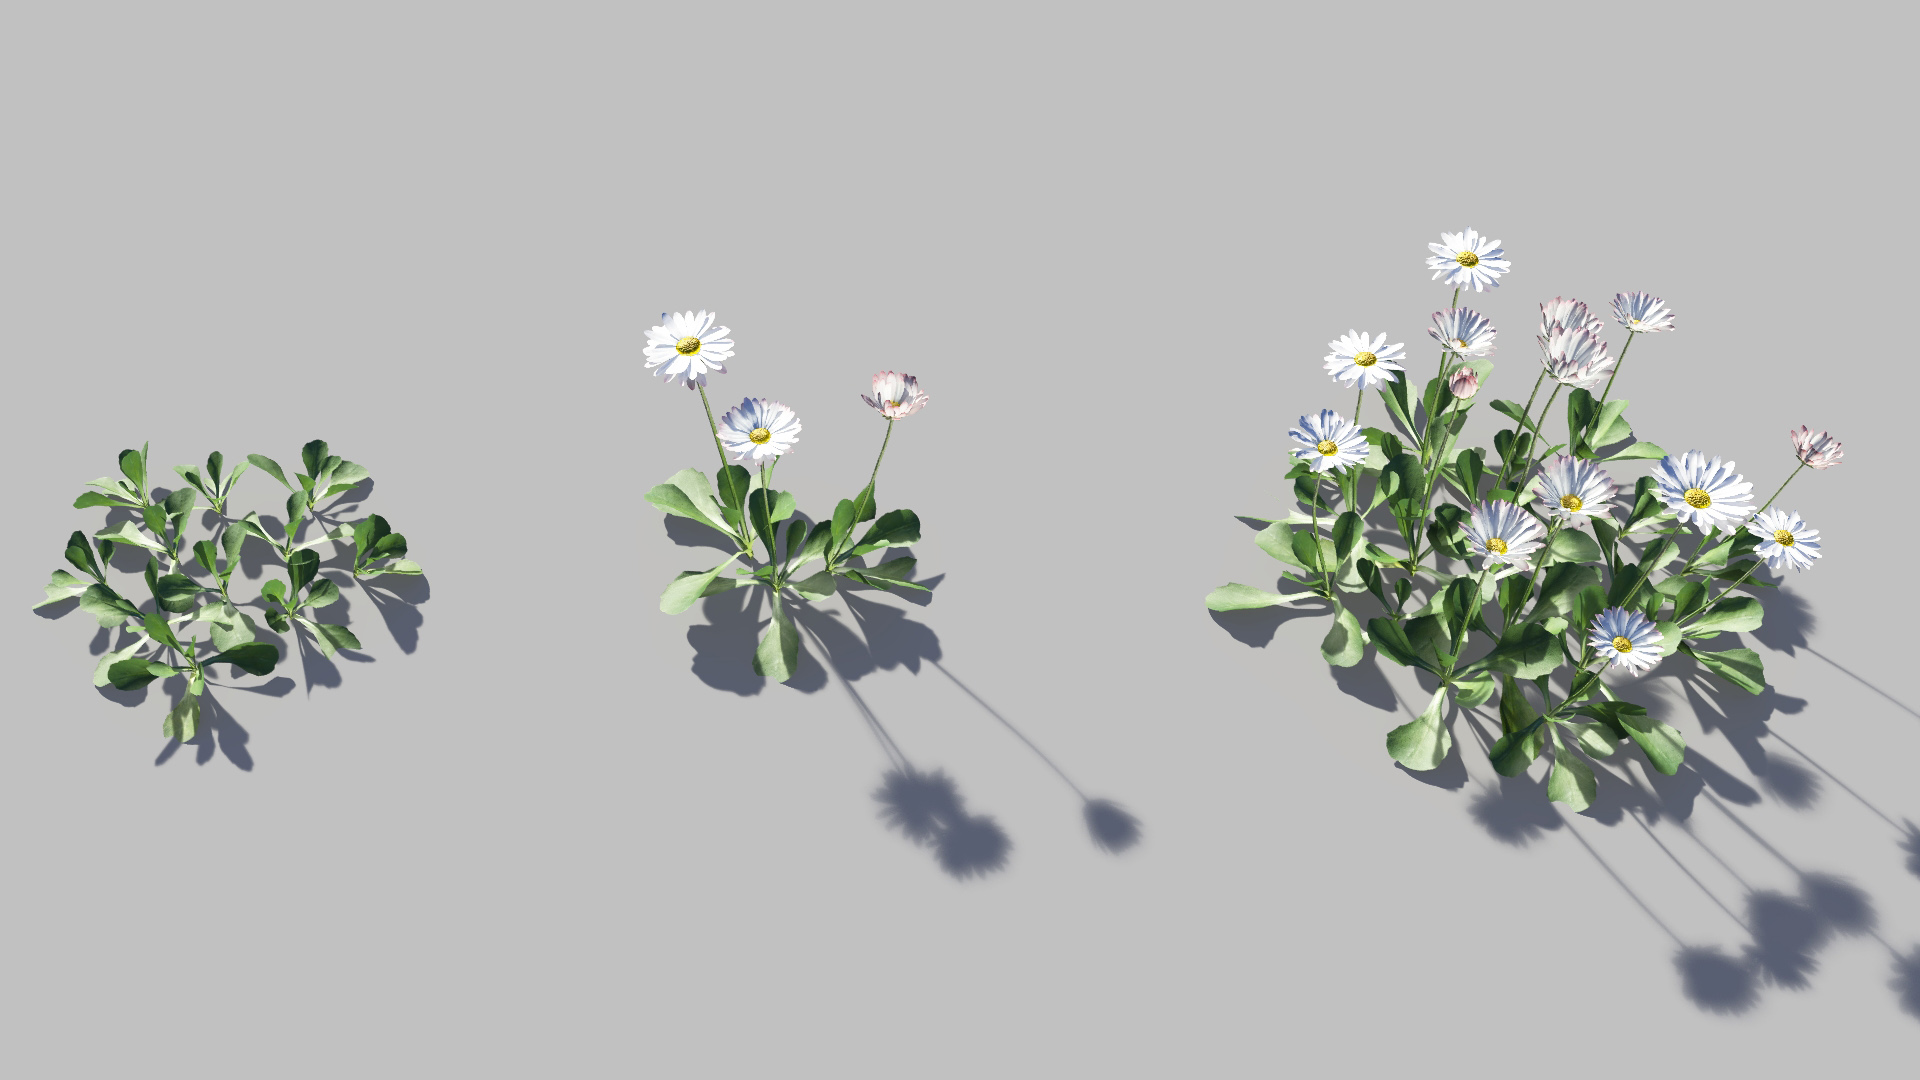 3D model of the Common daisy Bellis perennis